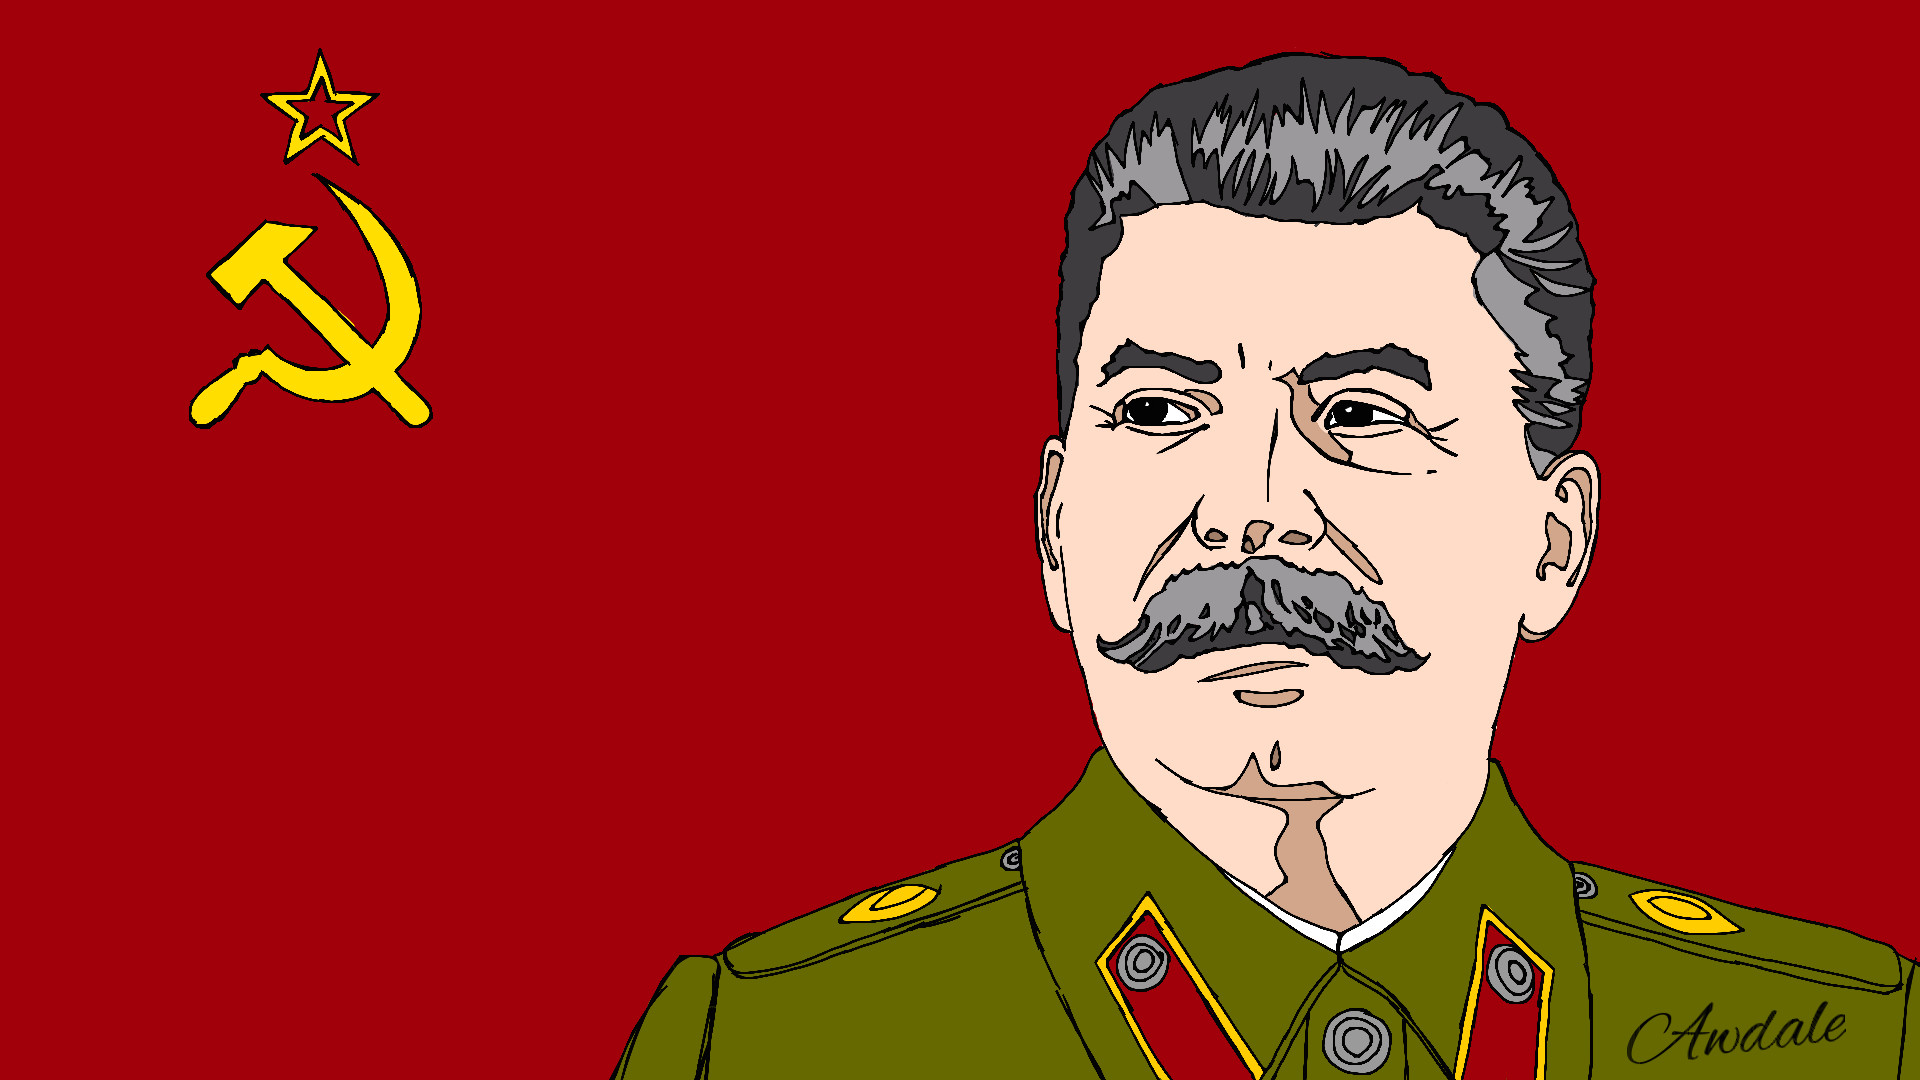 Creative Hd Wallpapers Free Download Stalin Wallpapers Hd 183 ①